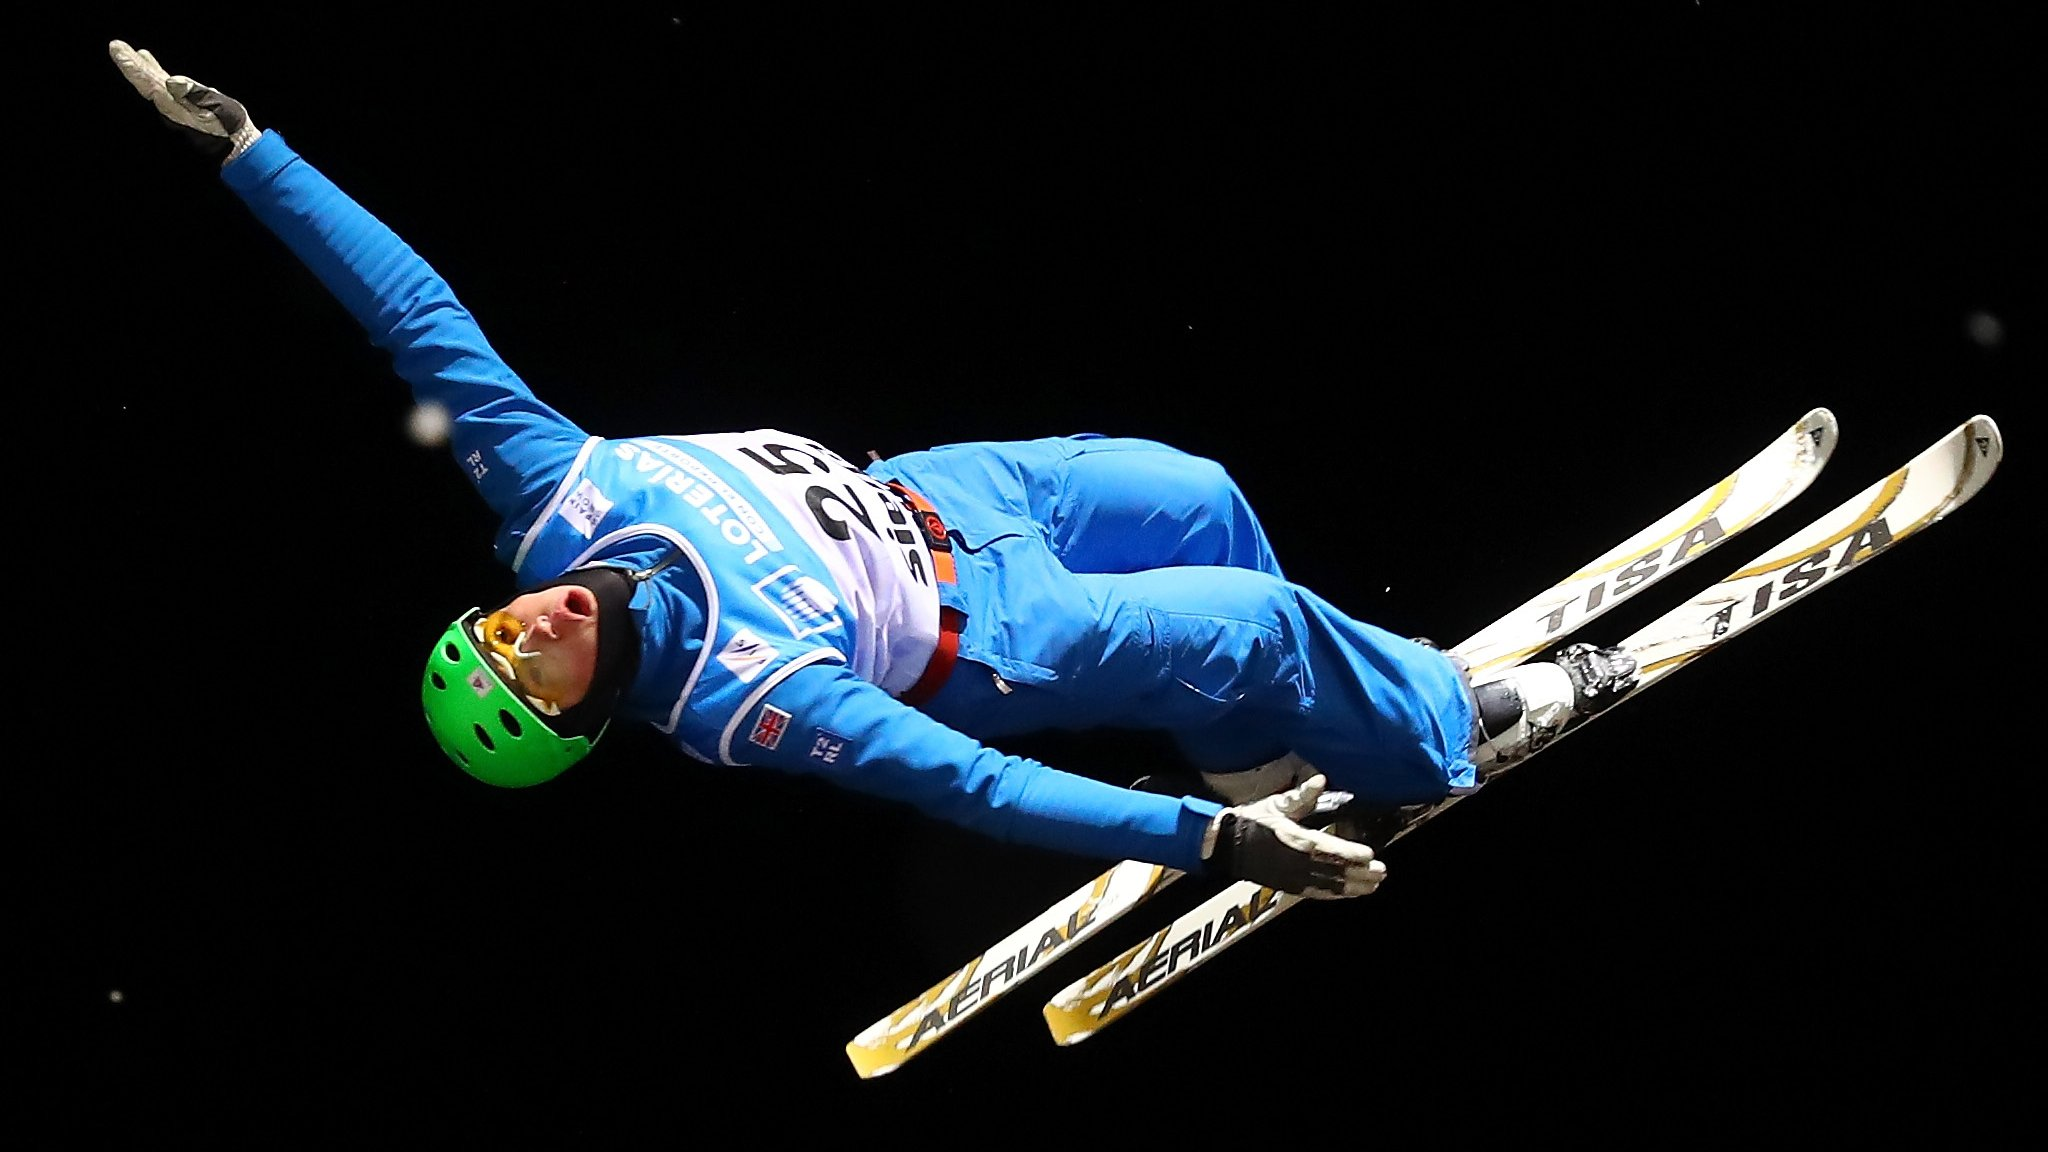 GB aerial skier Wallace suffers 'severe' head injury in training crash